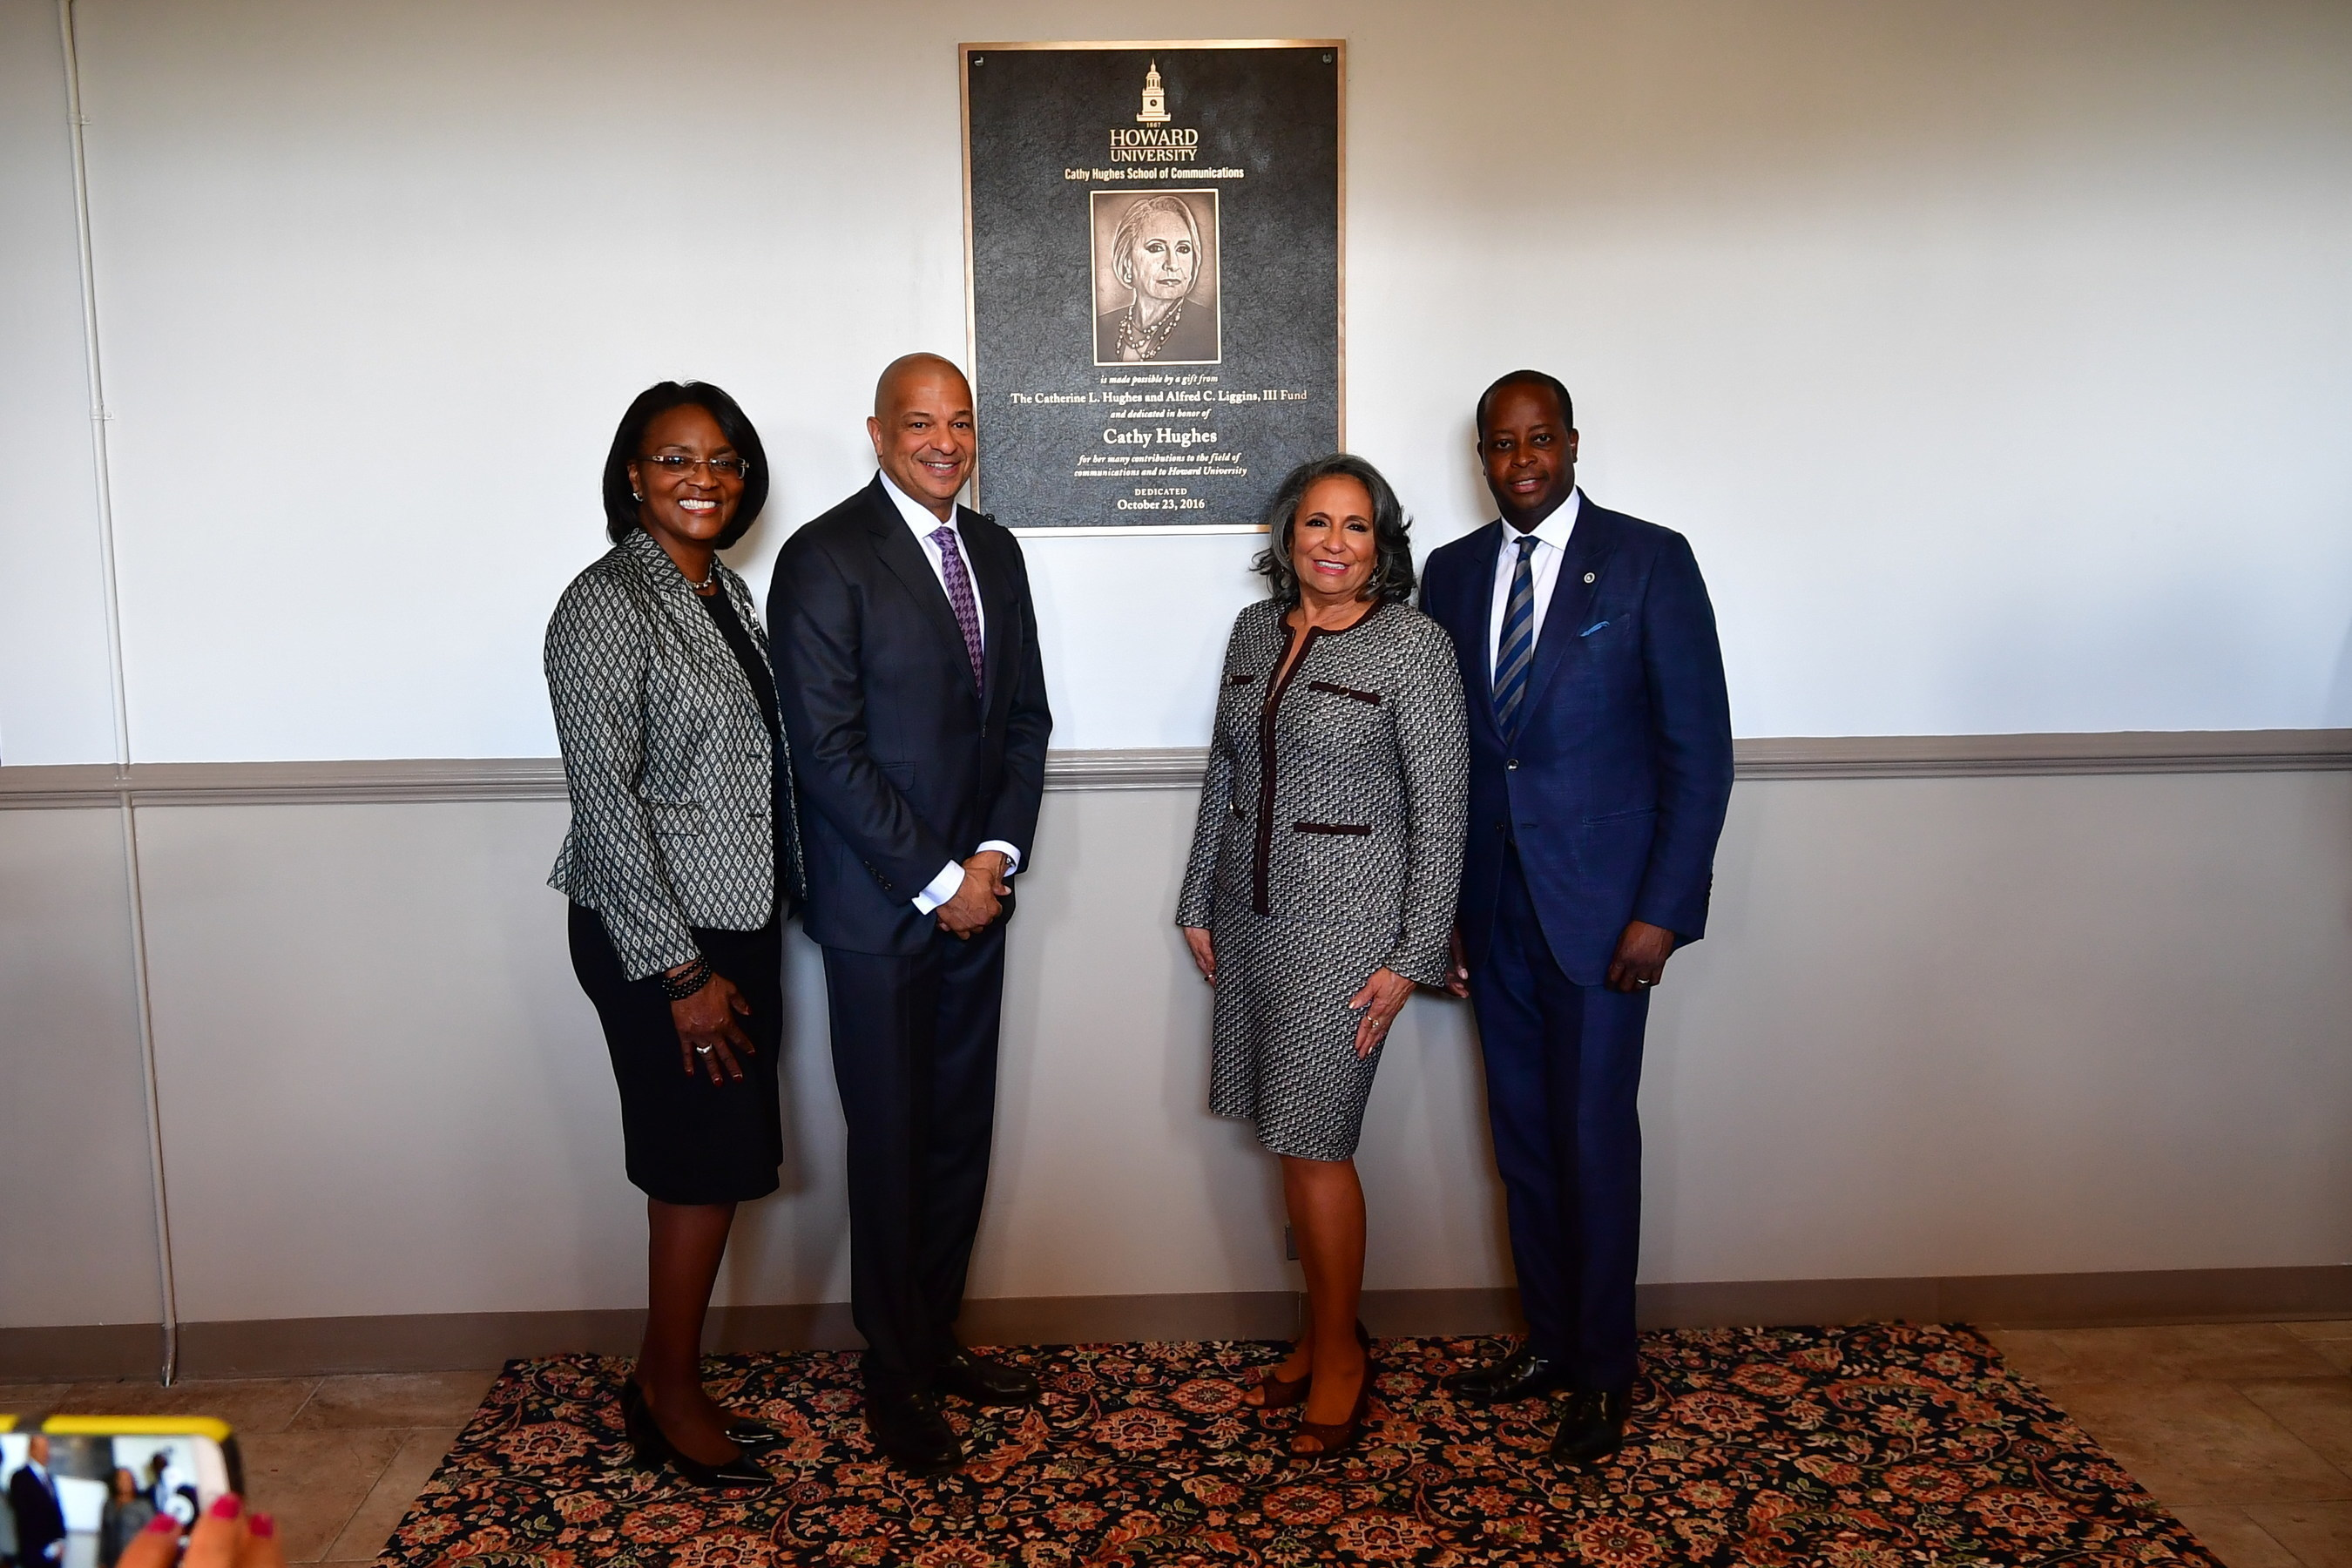 Dean of Cathy Hughes School of Communications Gracie Lawson-Borders, Ph. D, Radio One, Inc. CEO and President Alfred C. Liggins, III, Radio One, Inc. Founder and Chairperson Cathy Hughes and Howard University President Dr. Wayne A.I. Frederick at the Cathy Hughes School of Communications unveiling ceremony at Howard University on Sunday, October 23, 2016 in Washington.